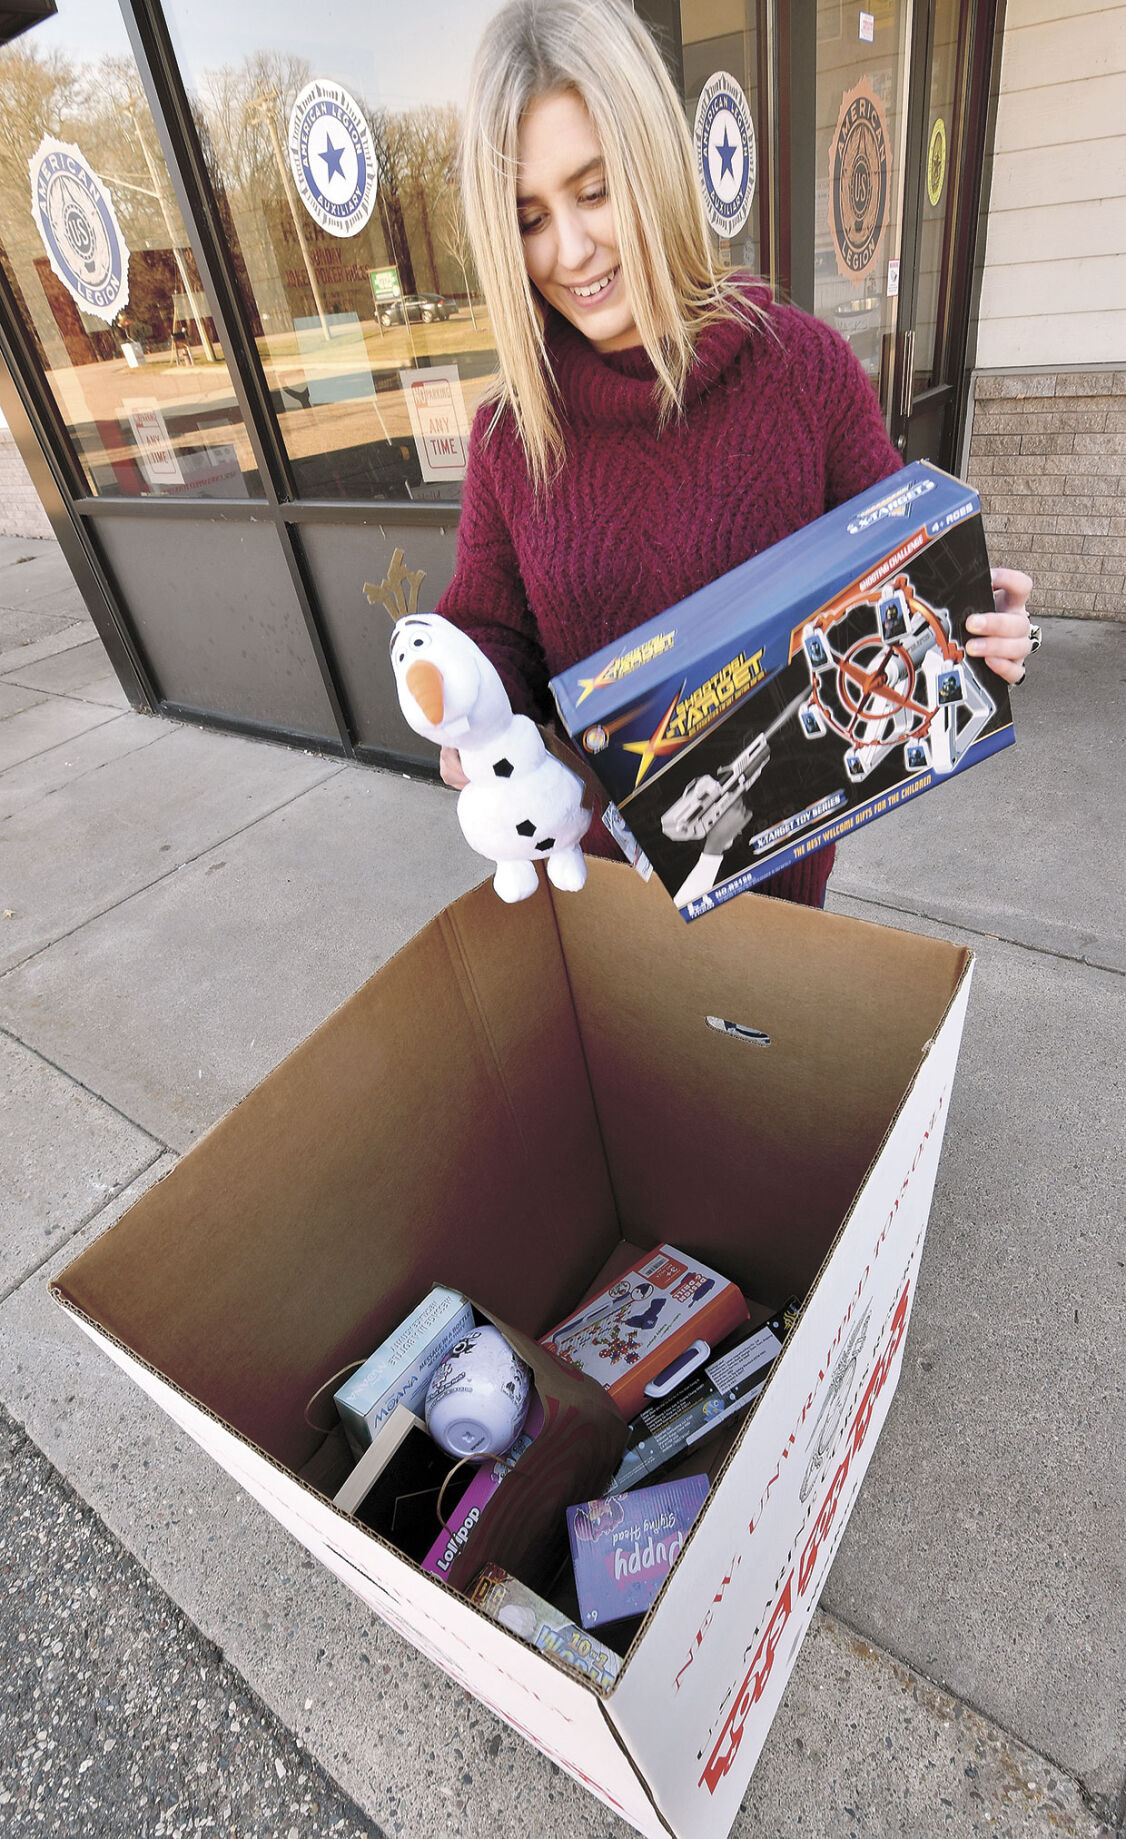 Collecting toys for children in need